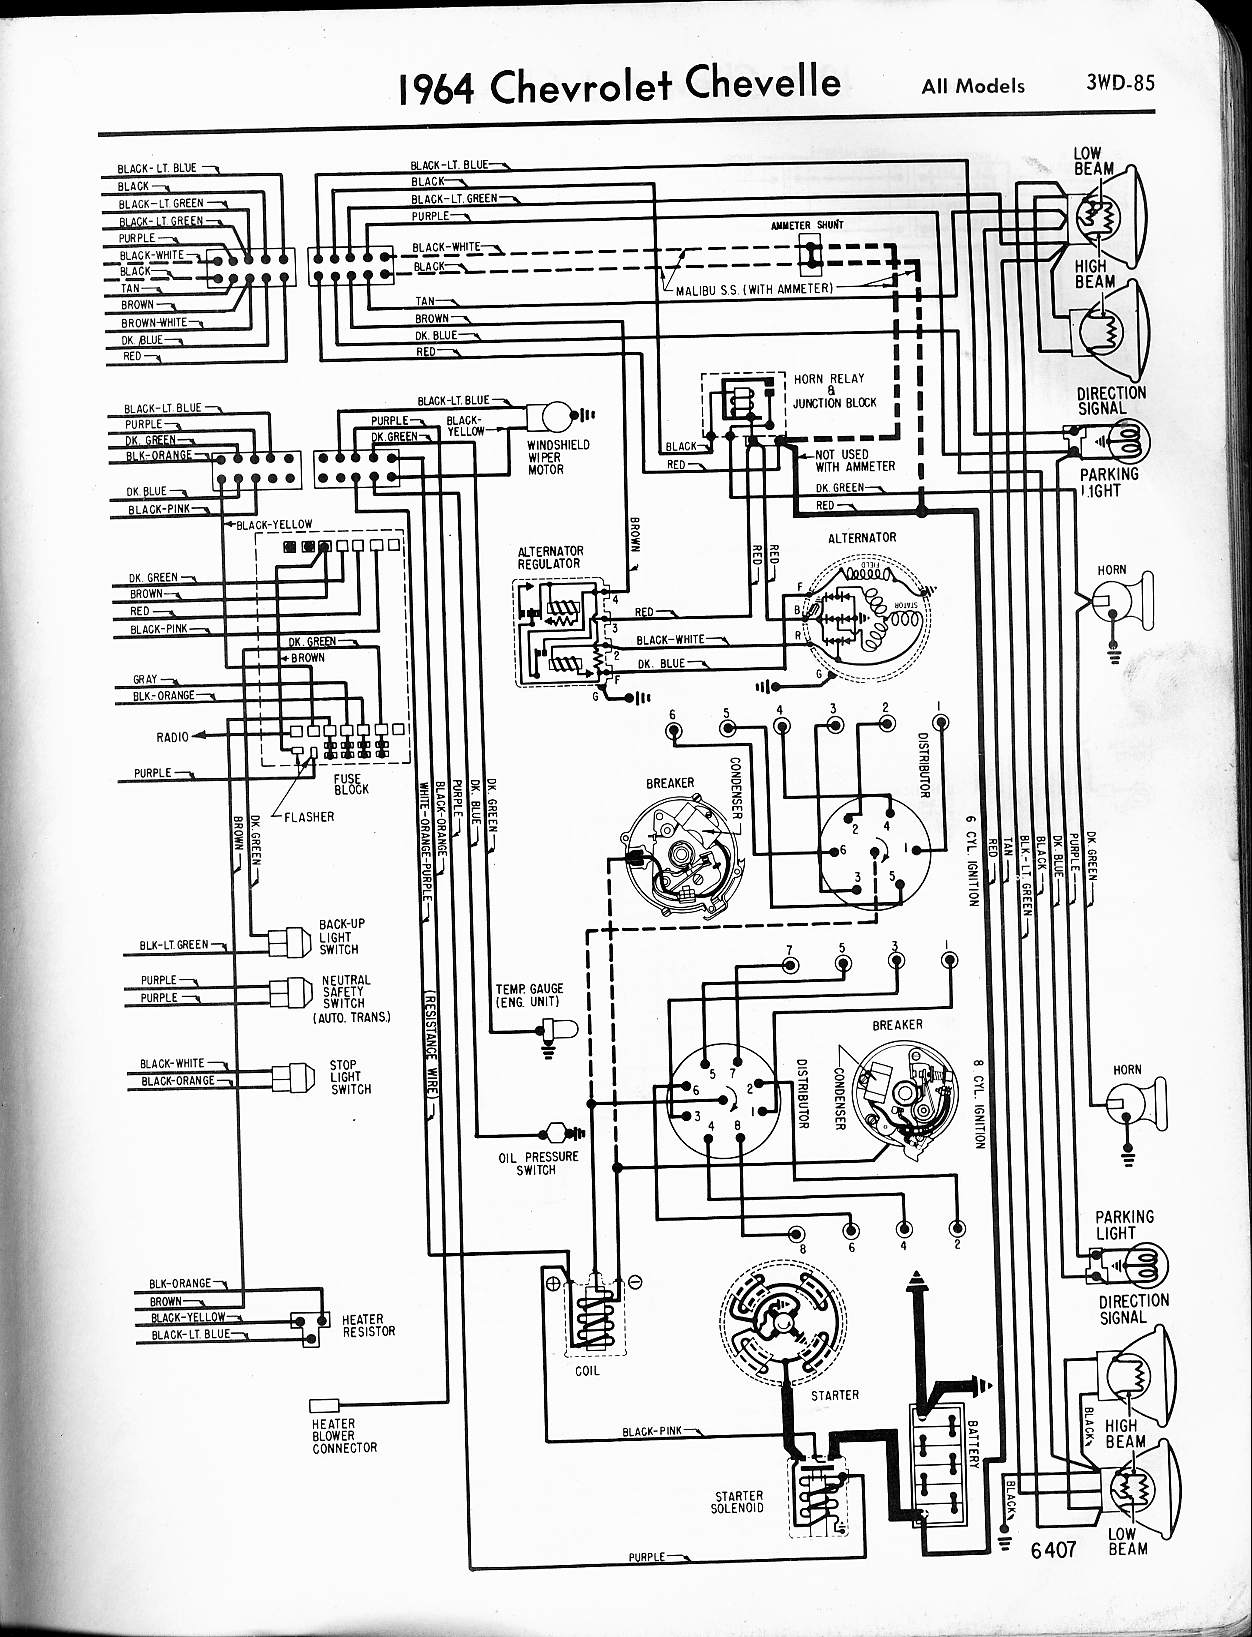 57 chevy wiring schematic wiring diagrams folder 57 chevy fuse box location catalogue